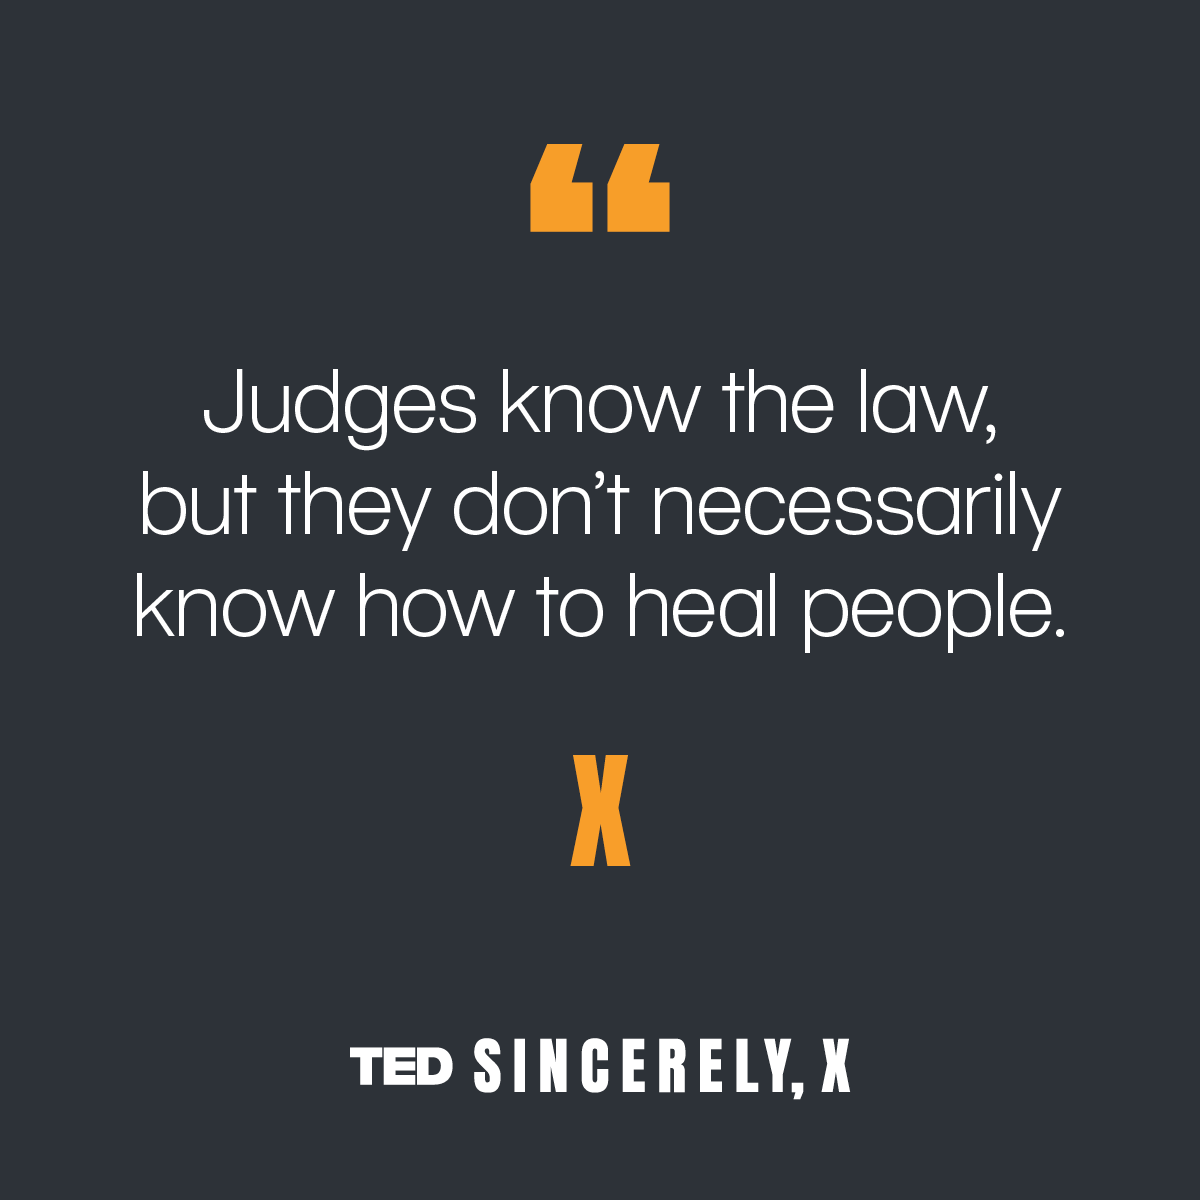 Listen to IJ's @sujathabaliga on the recent #SincerelyX episode by @TEDTalks where she talks abt how #RestorativeJustice creates space for #Healing & #Accountability. The episode is available on @hearluminary.